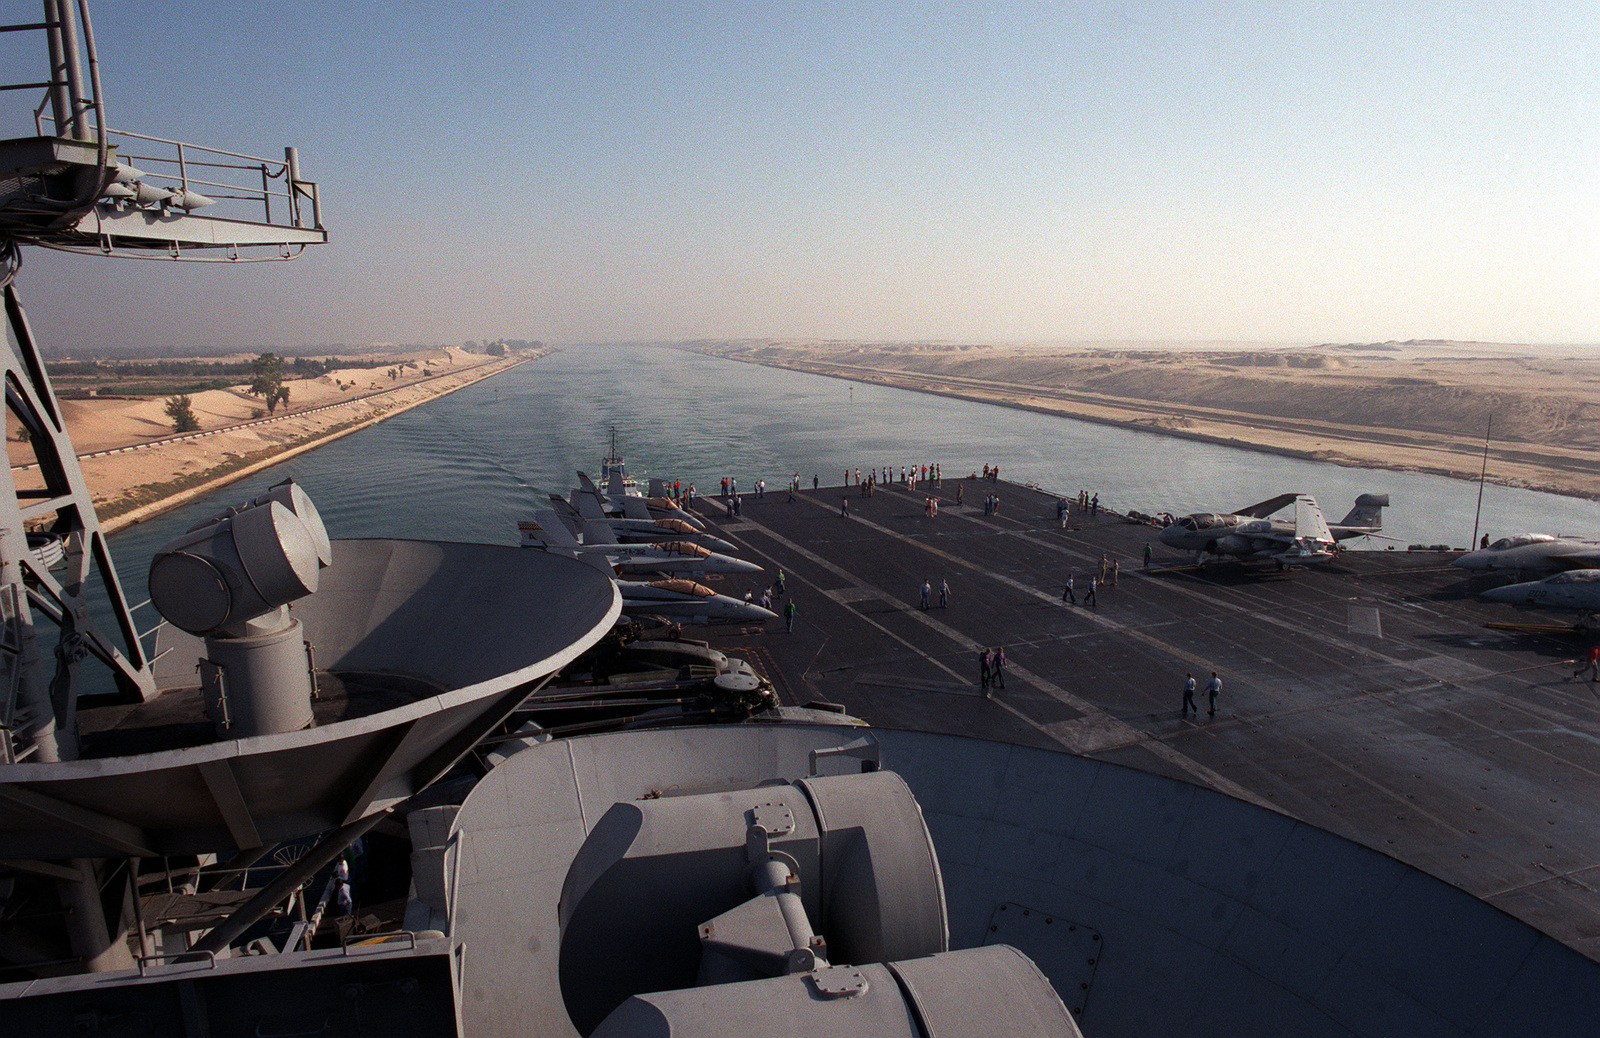 A crew member watches from the aft flight deck as the nuclear-powered aircraft carrier USS THEODORE ROOSEVELT (CVN-71) transits the Suez Canal en route to the Red Sea